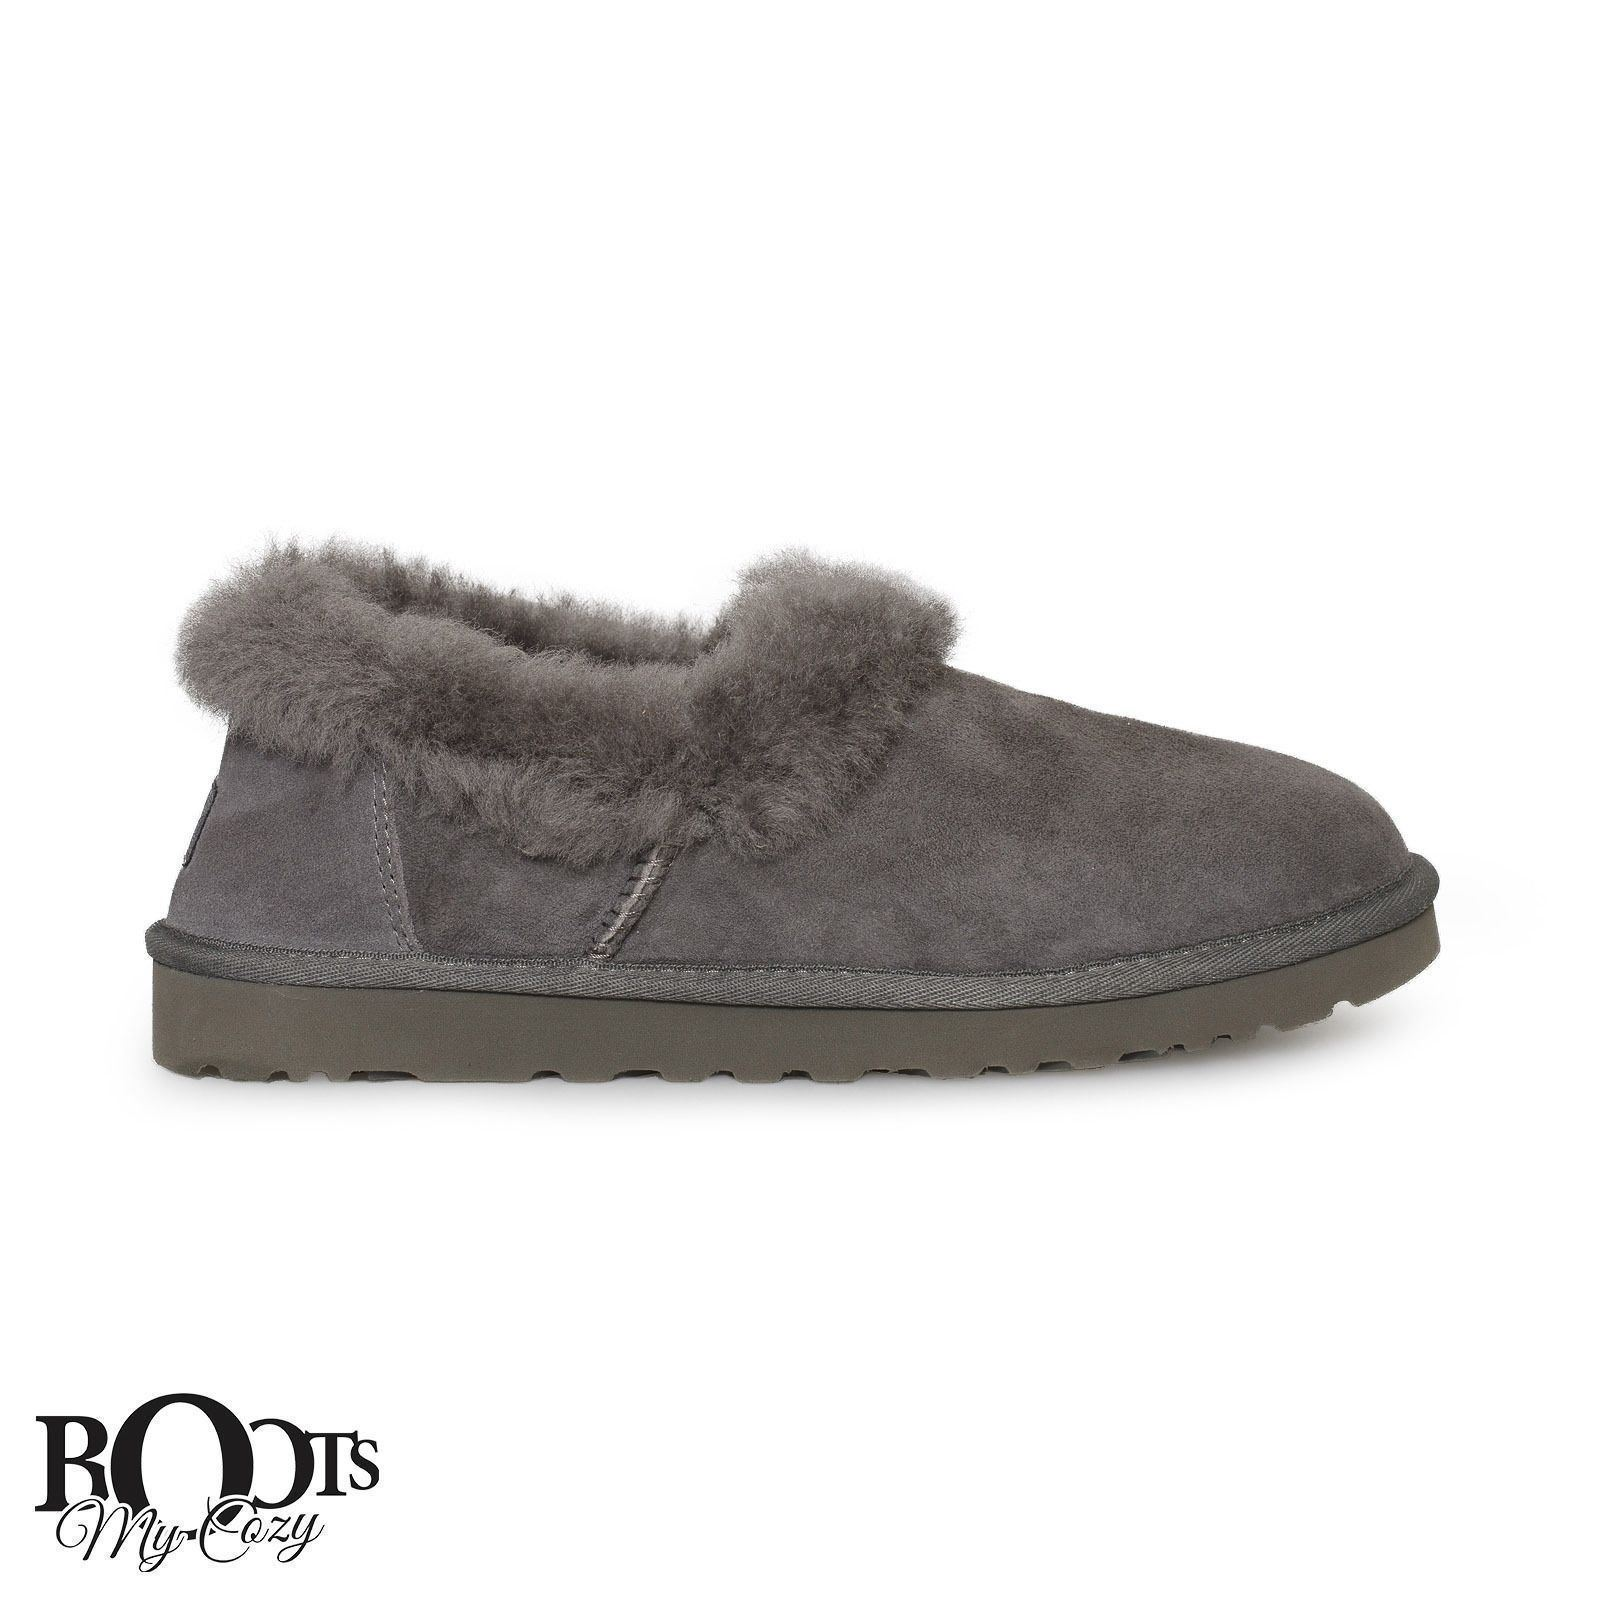 cdbf1f4175e Ugg Nita Grey Suede Sheepskin Women s and 50 similar items. S l1600